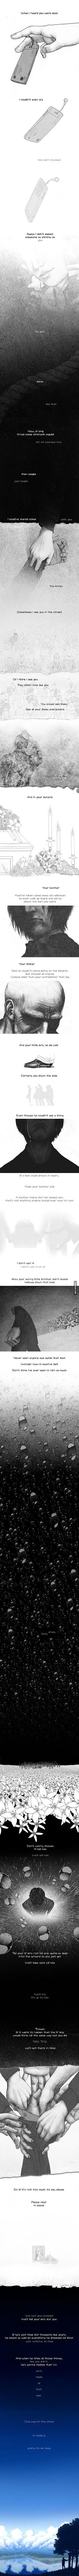 Your suicide...[Didnt read but liked the drawings]